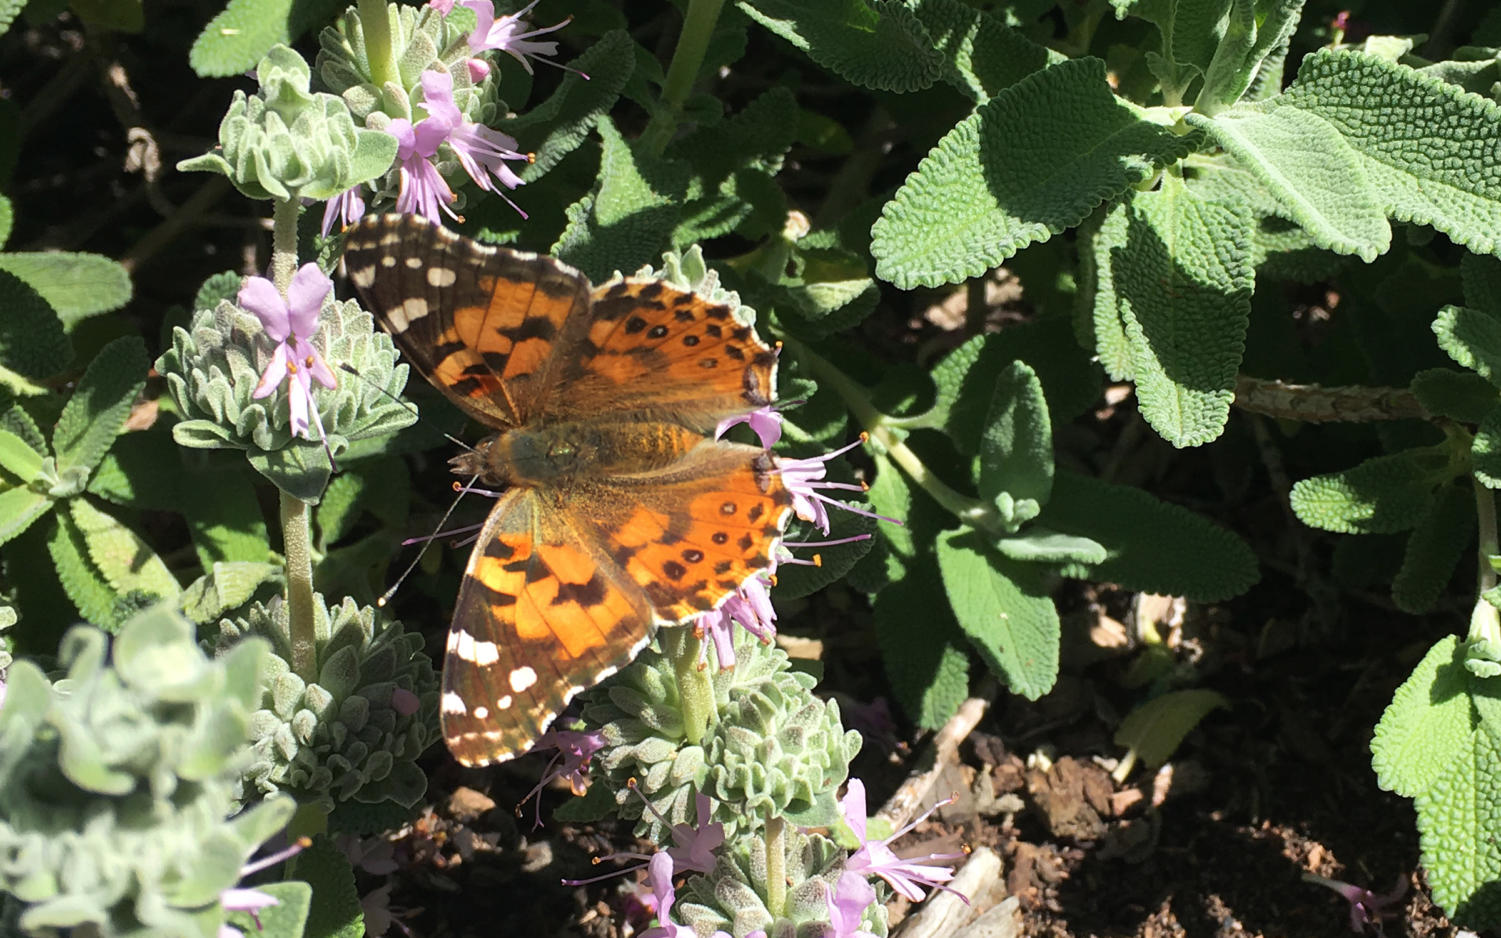 A painted lady butterfly rests on a native sage plant in the front yard of an Encinitas home on Thursday, March 14. (Photo by Roman S. Koenig, North Coast Current)